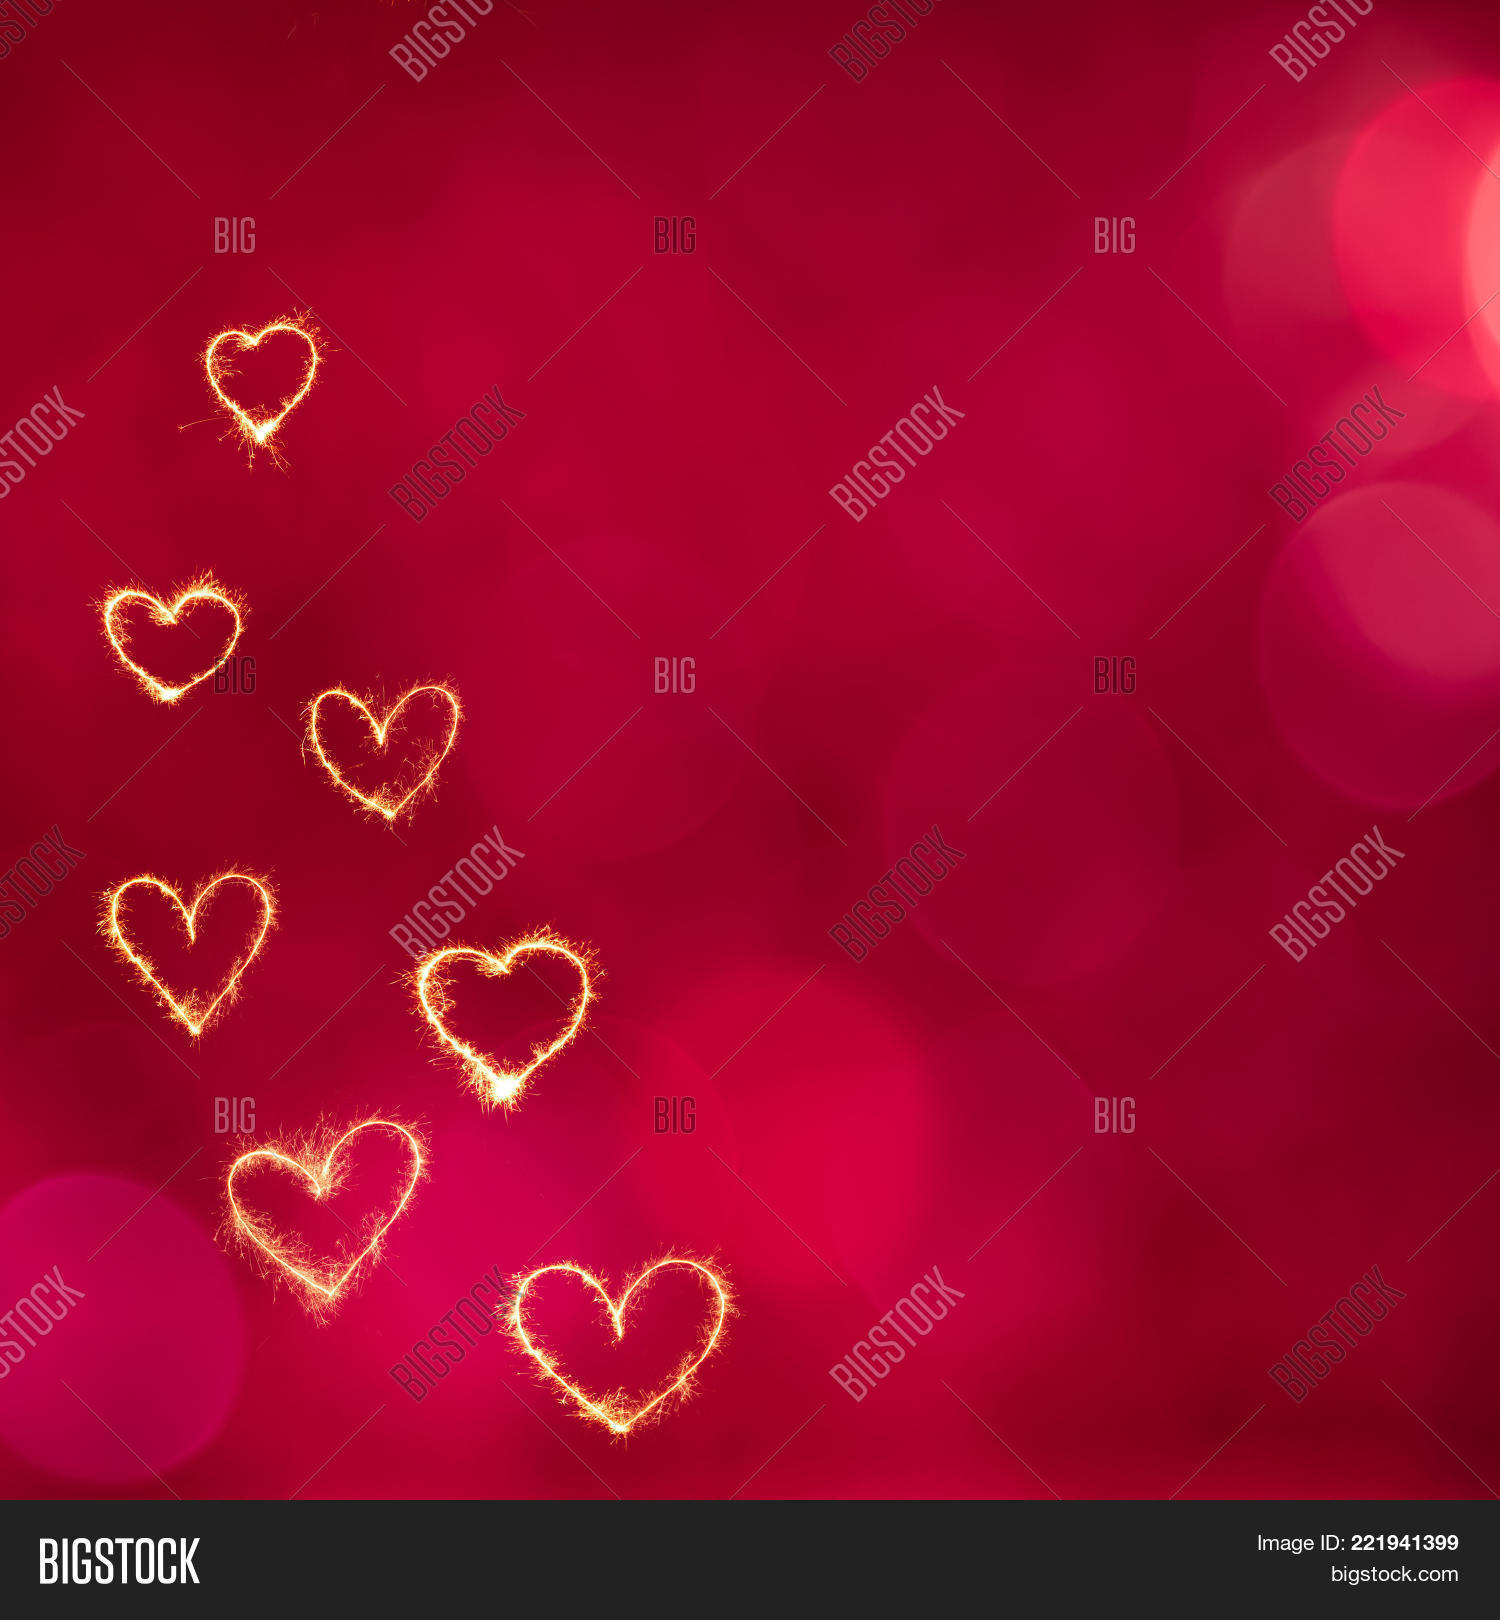 Beautiful Decorative Image & Photo (Free Trial) | Bigstock